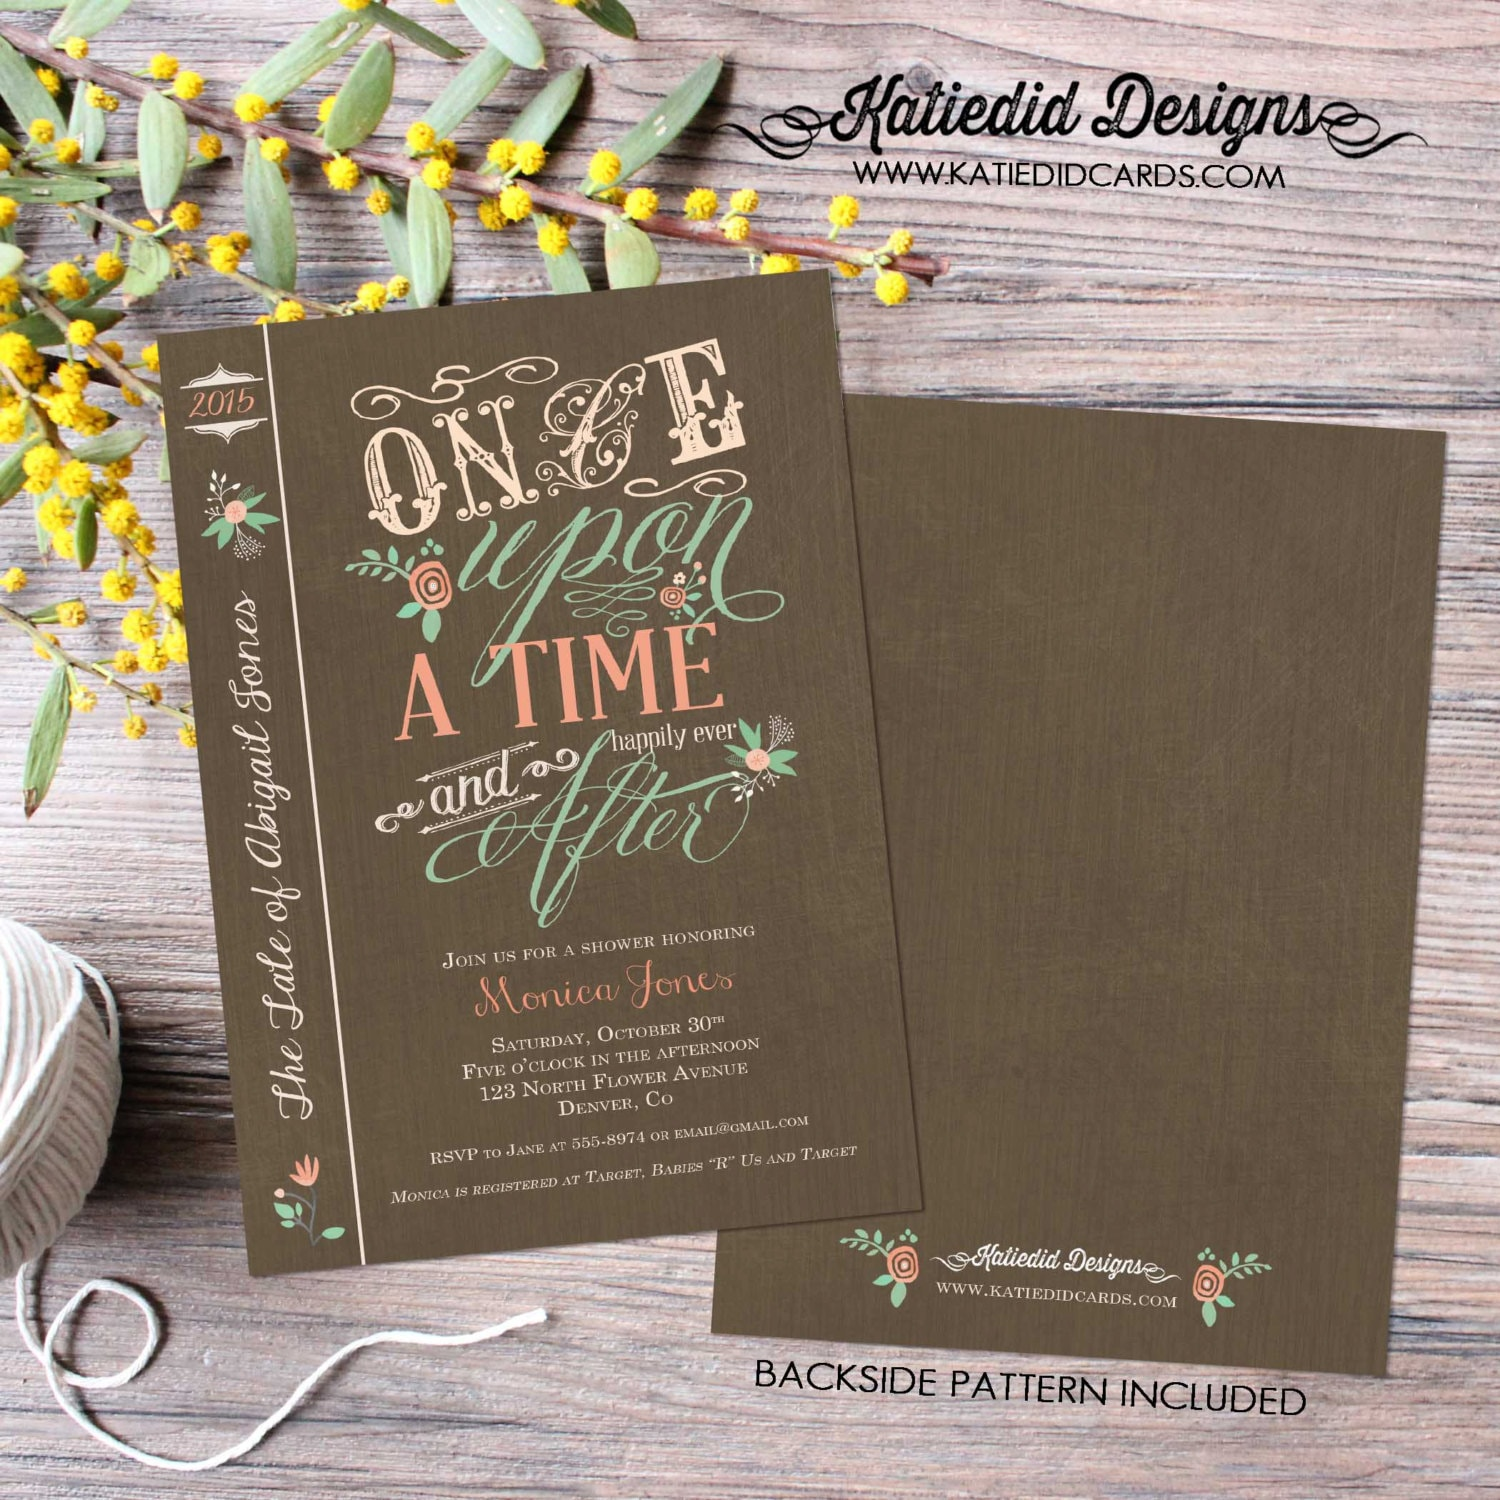 Once upon a time storybook baby shower invitation girl book cover ...